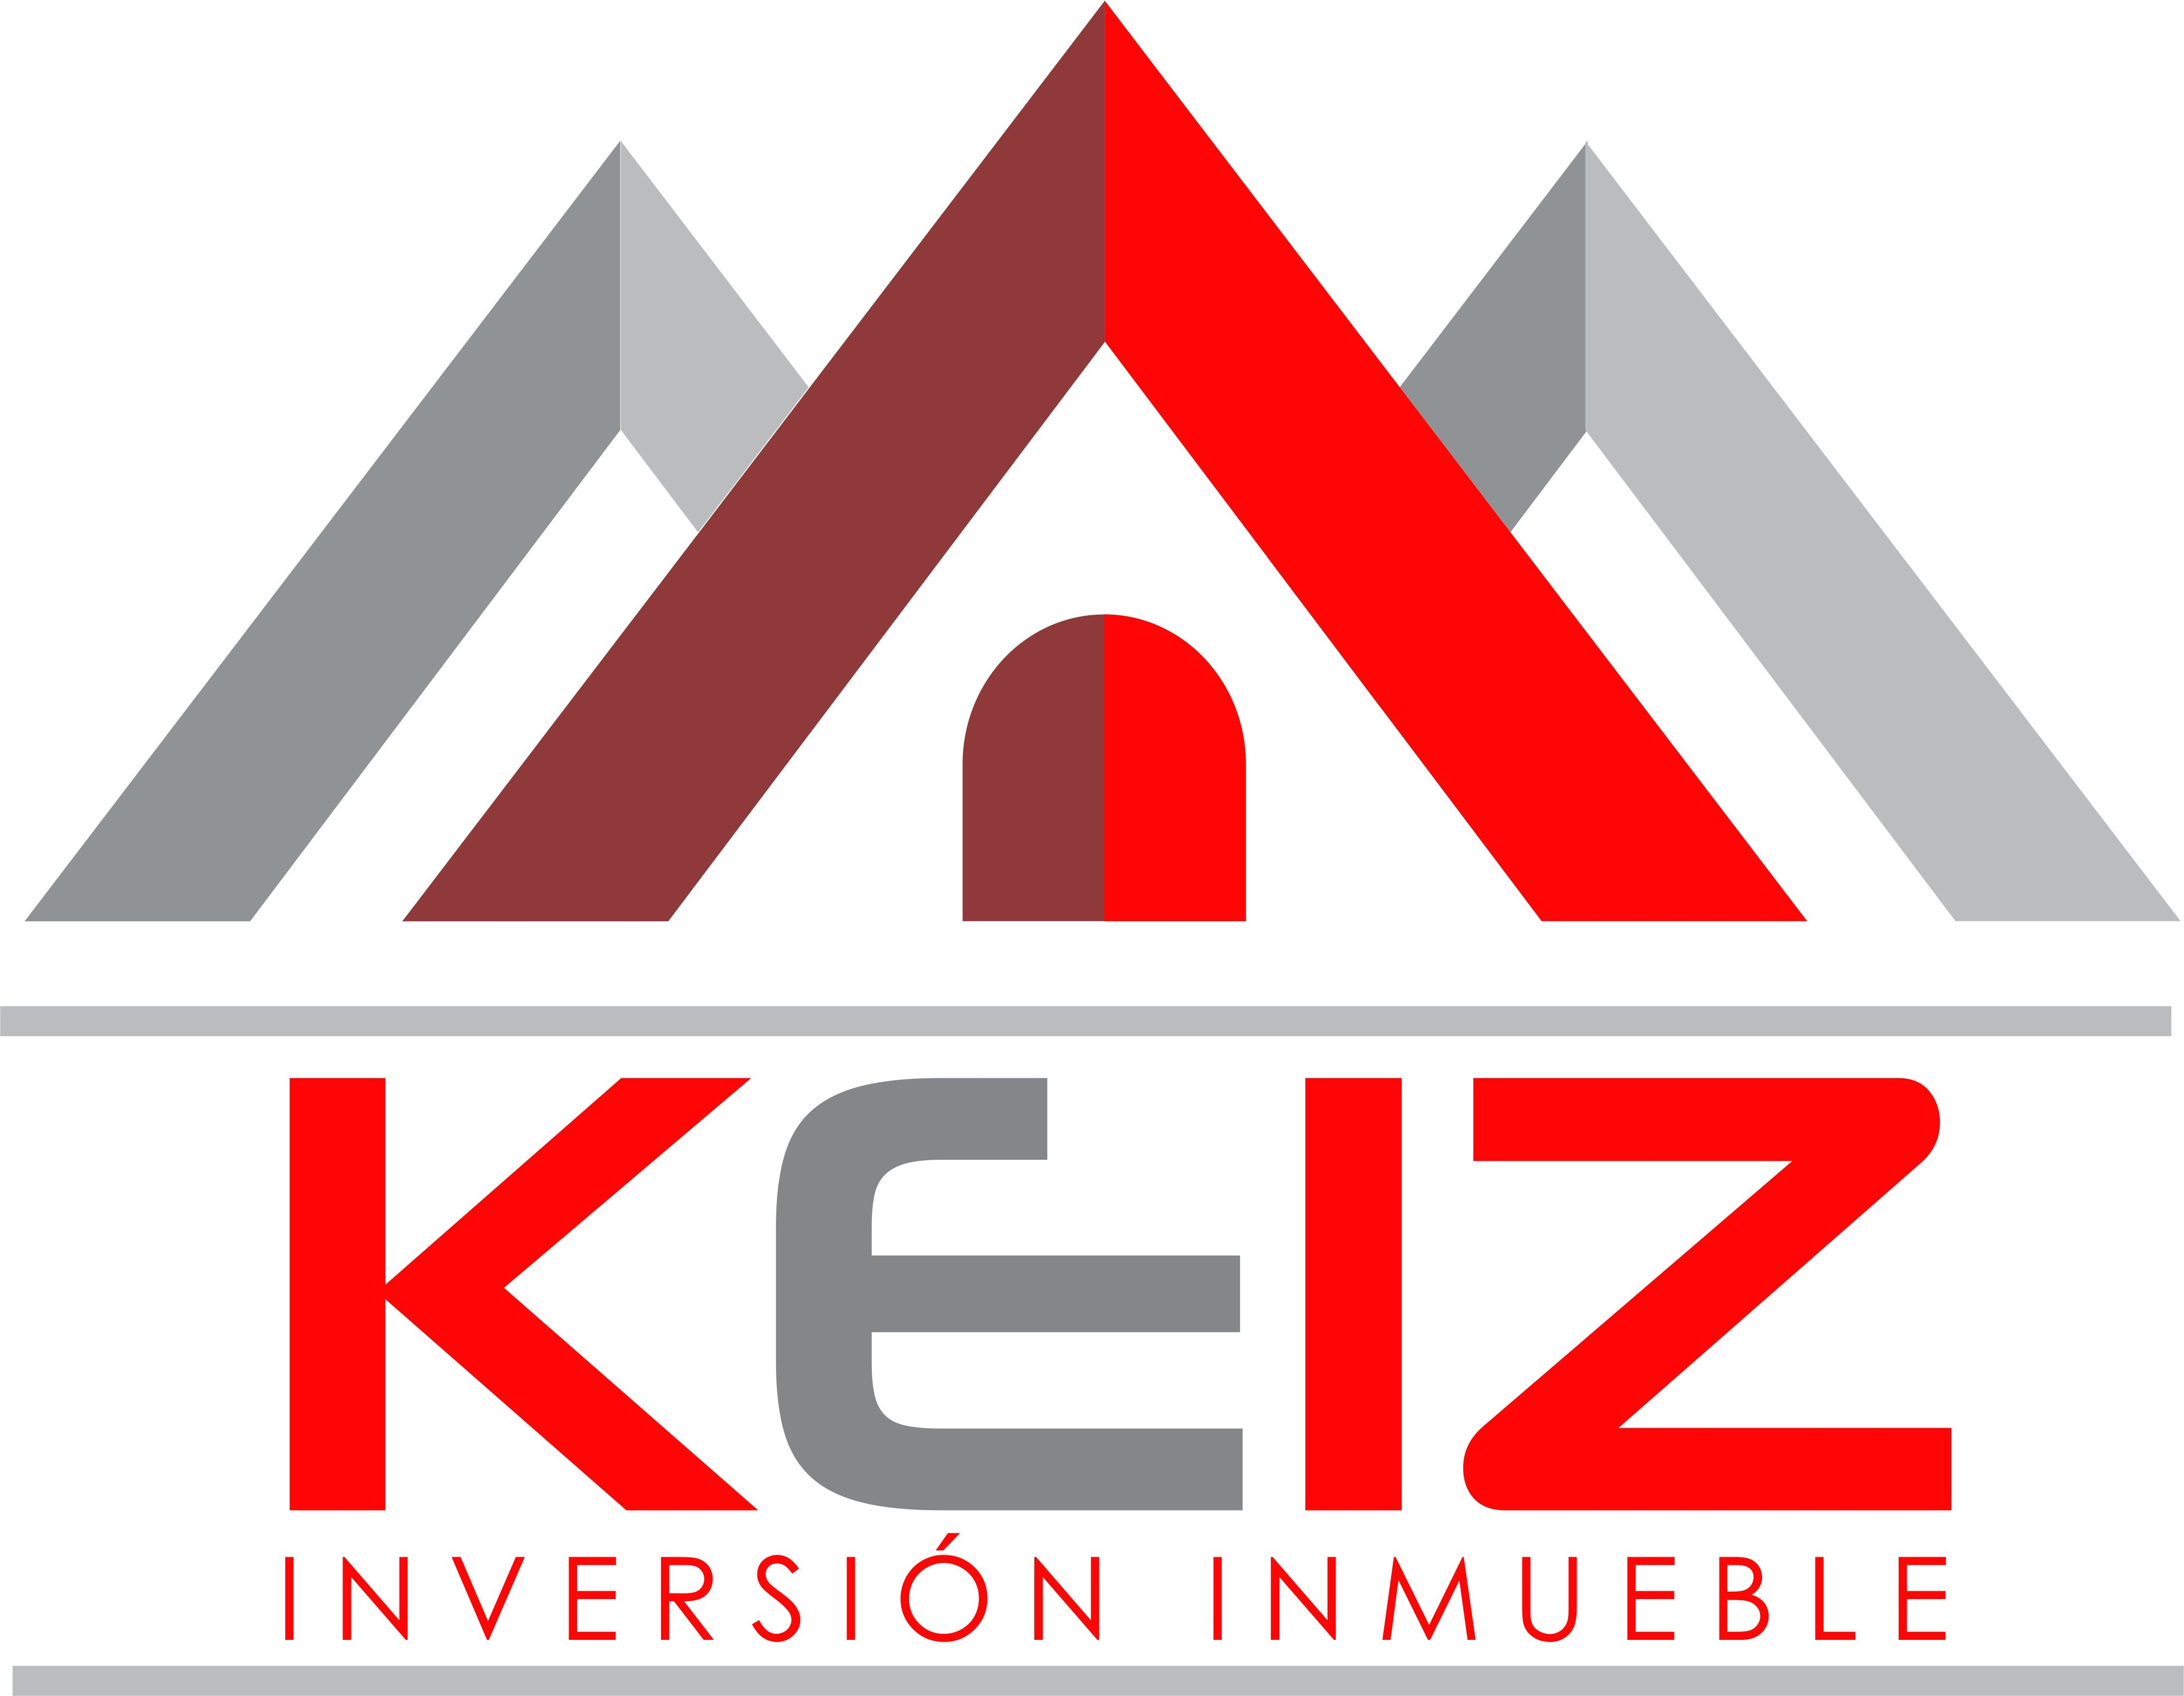 KEIZ INVERSION INMUEBLE